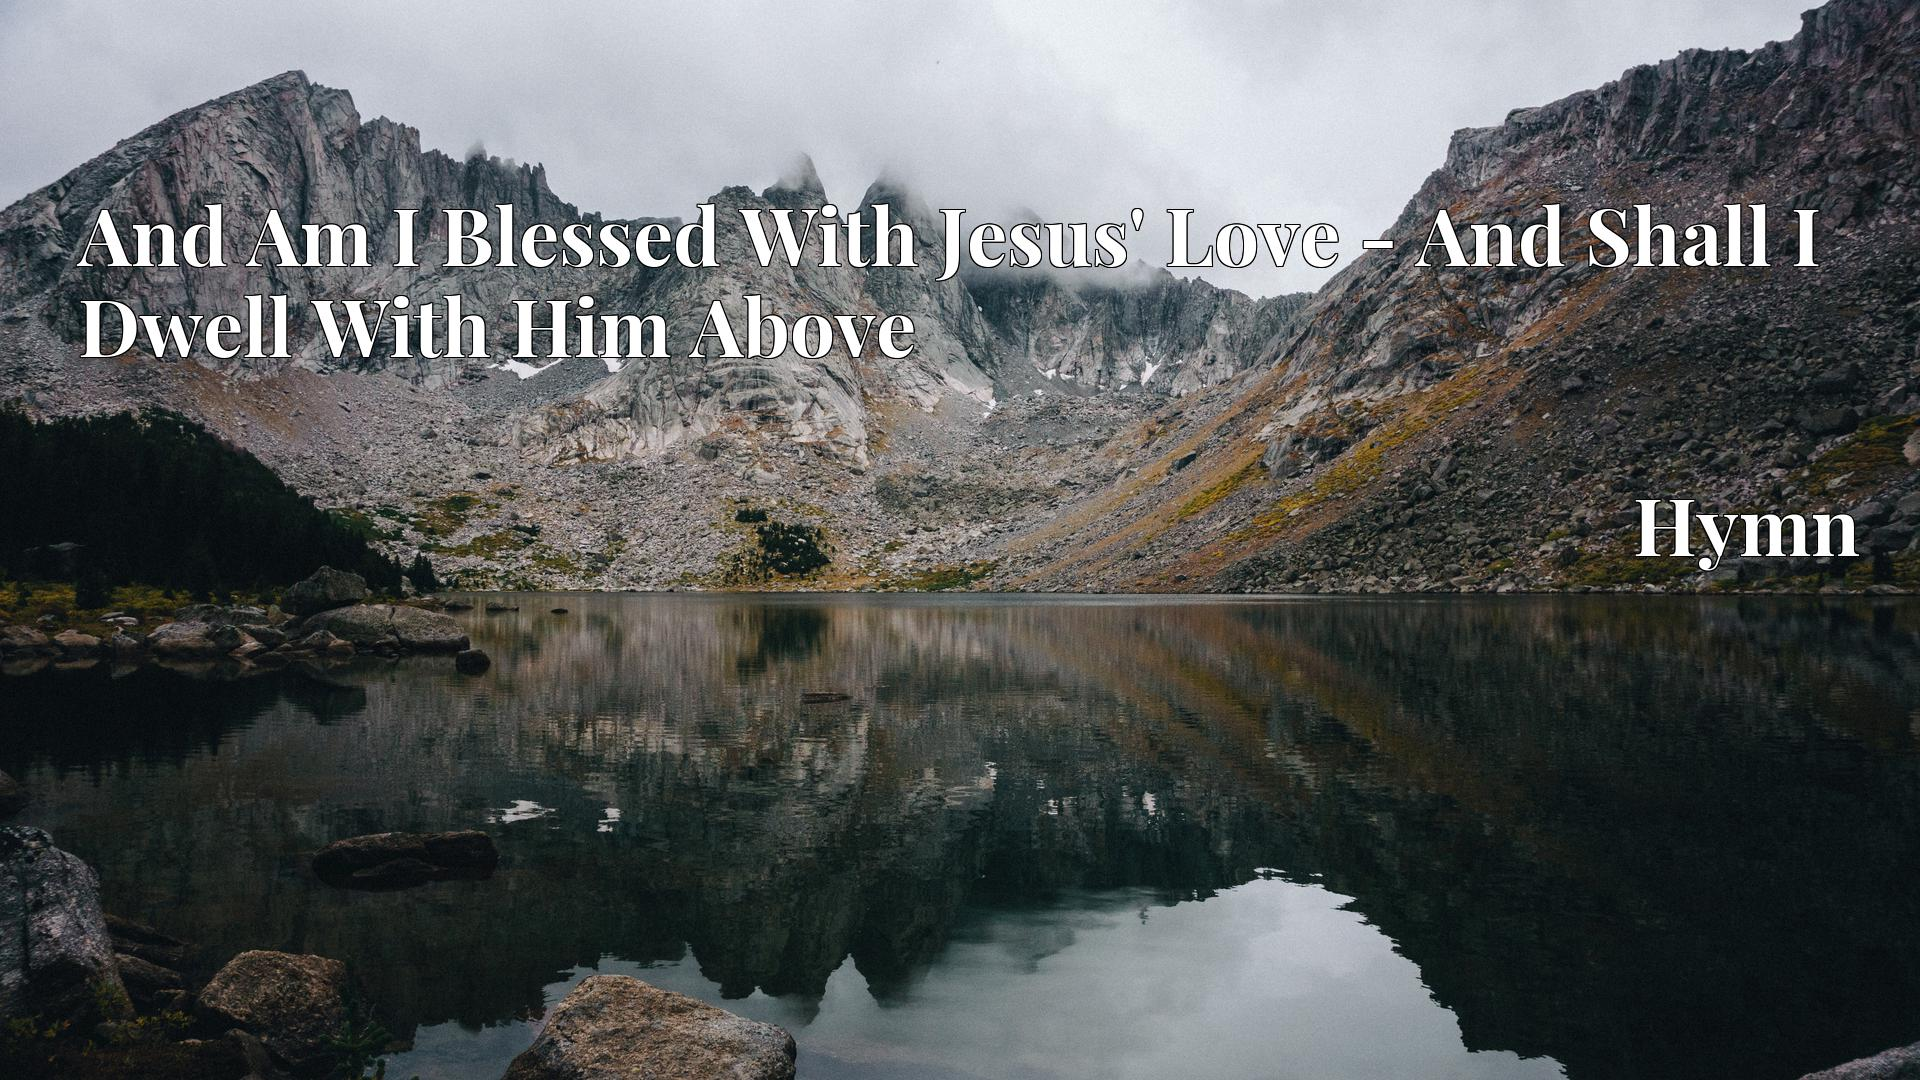 And Am I Blessed With Jesus' Love - And Shall I Dwell With Him Above - Hymn